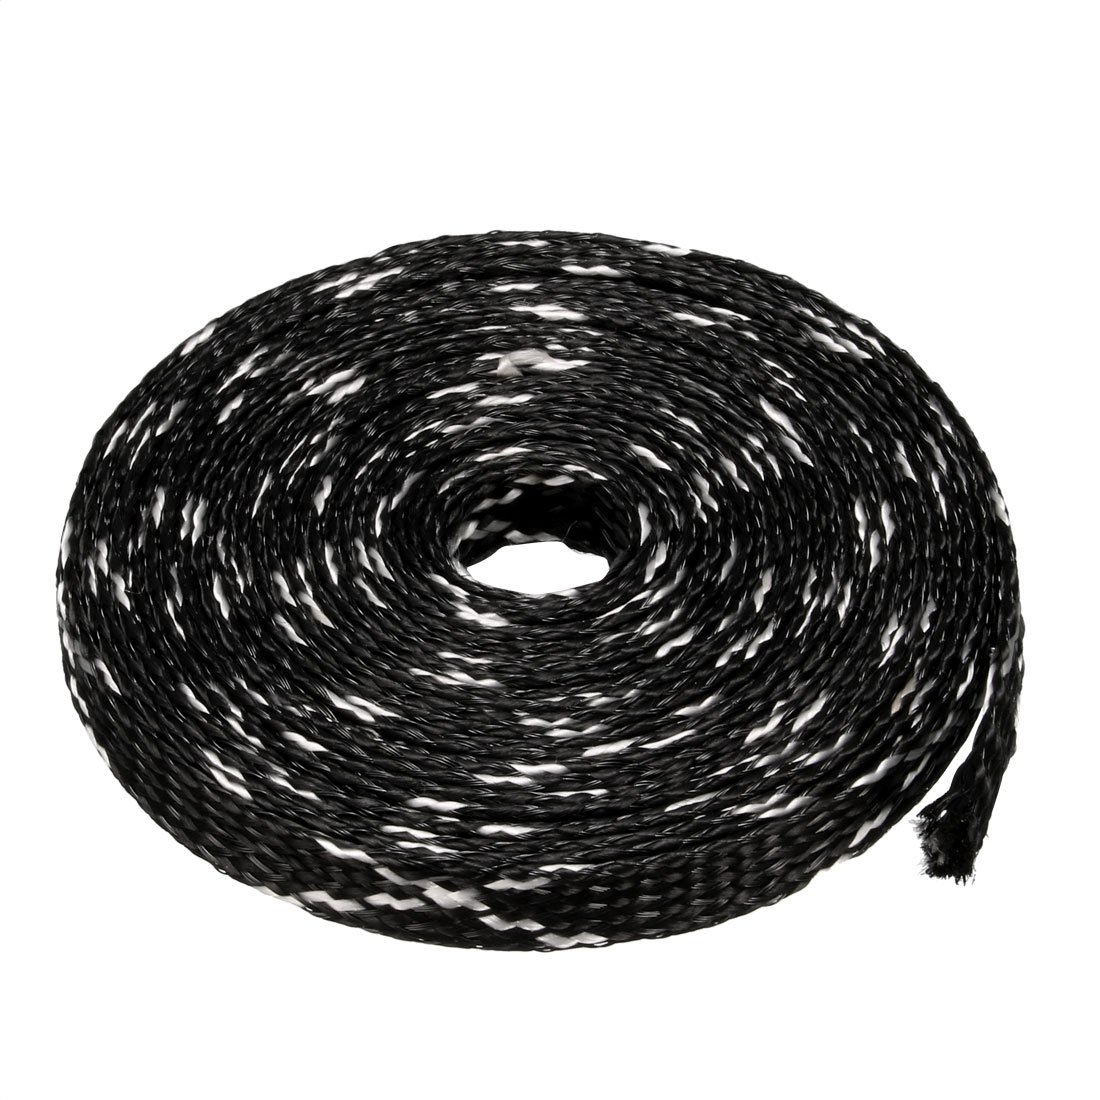 sourcing map PET Braided Sleeving 16.4 Feet 5m Expandable Cable Wrap 12mm Diameter Wire Sheath Black Purple a16101900ux1420